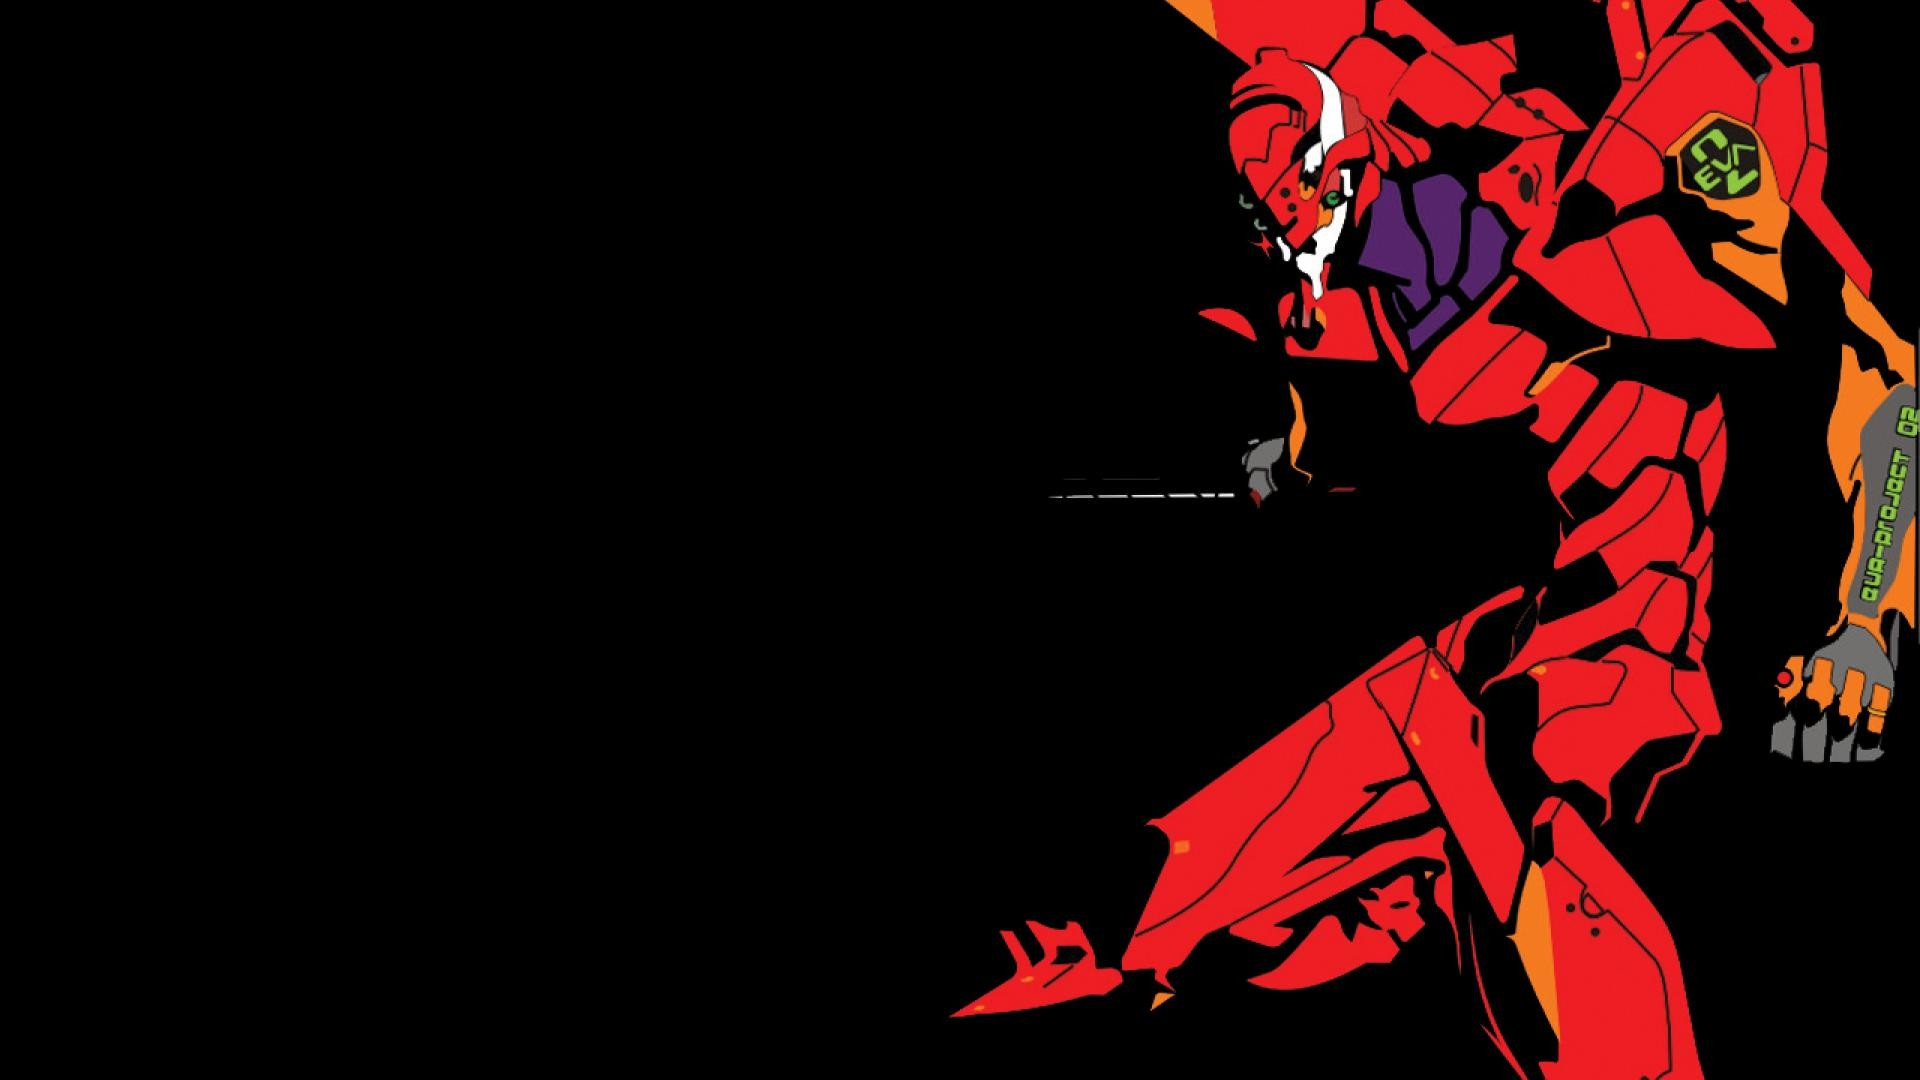 1920x1080 evangelion wallpaper 1080p Evangelion Wallpaper 1080p